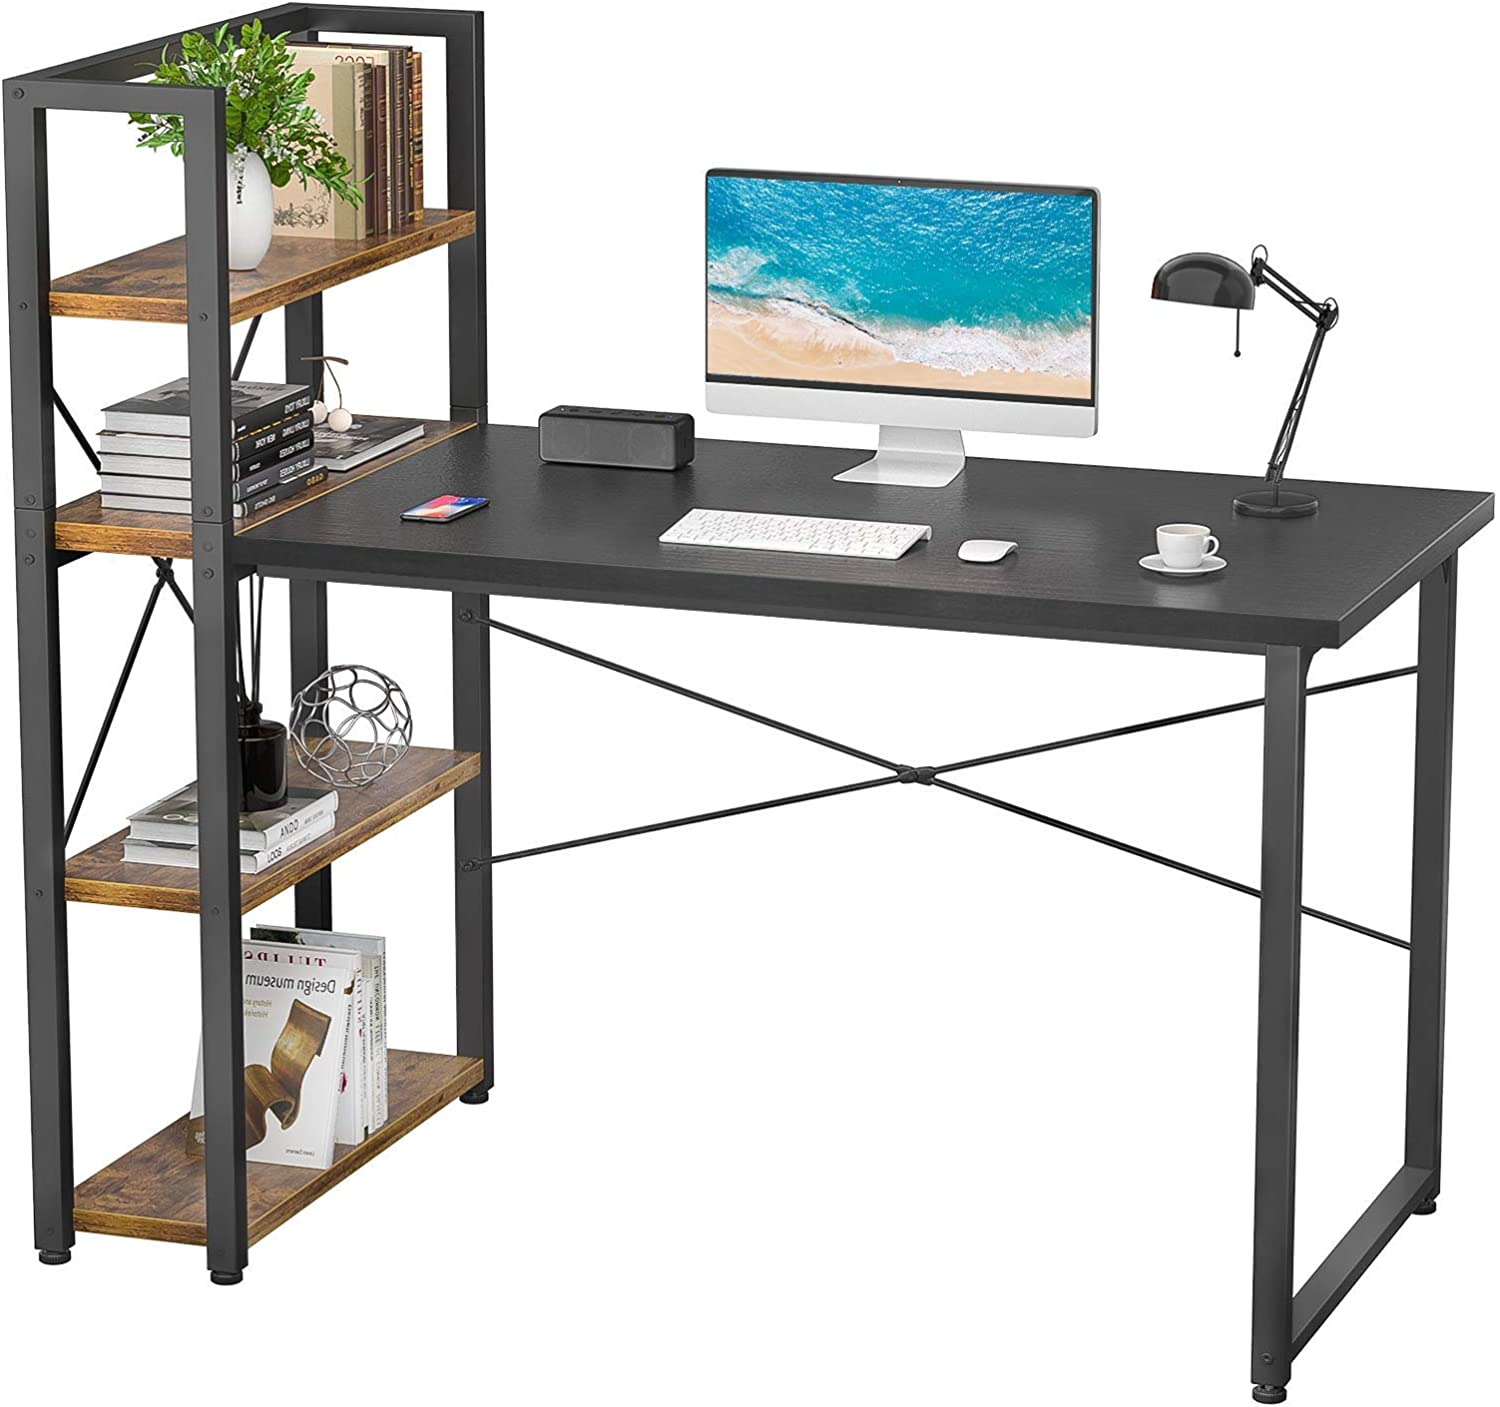 Foxemart Computer Desk with Storage Shelves Reversible Modern Writing Home Office Desks, Space-Saving Gaming Study Laptop Table Craft Work Desk with Bookshelf for Small Space, Black/Rustic Brown